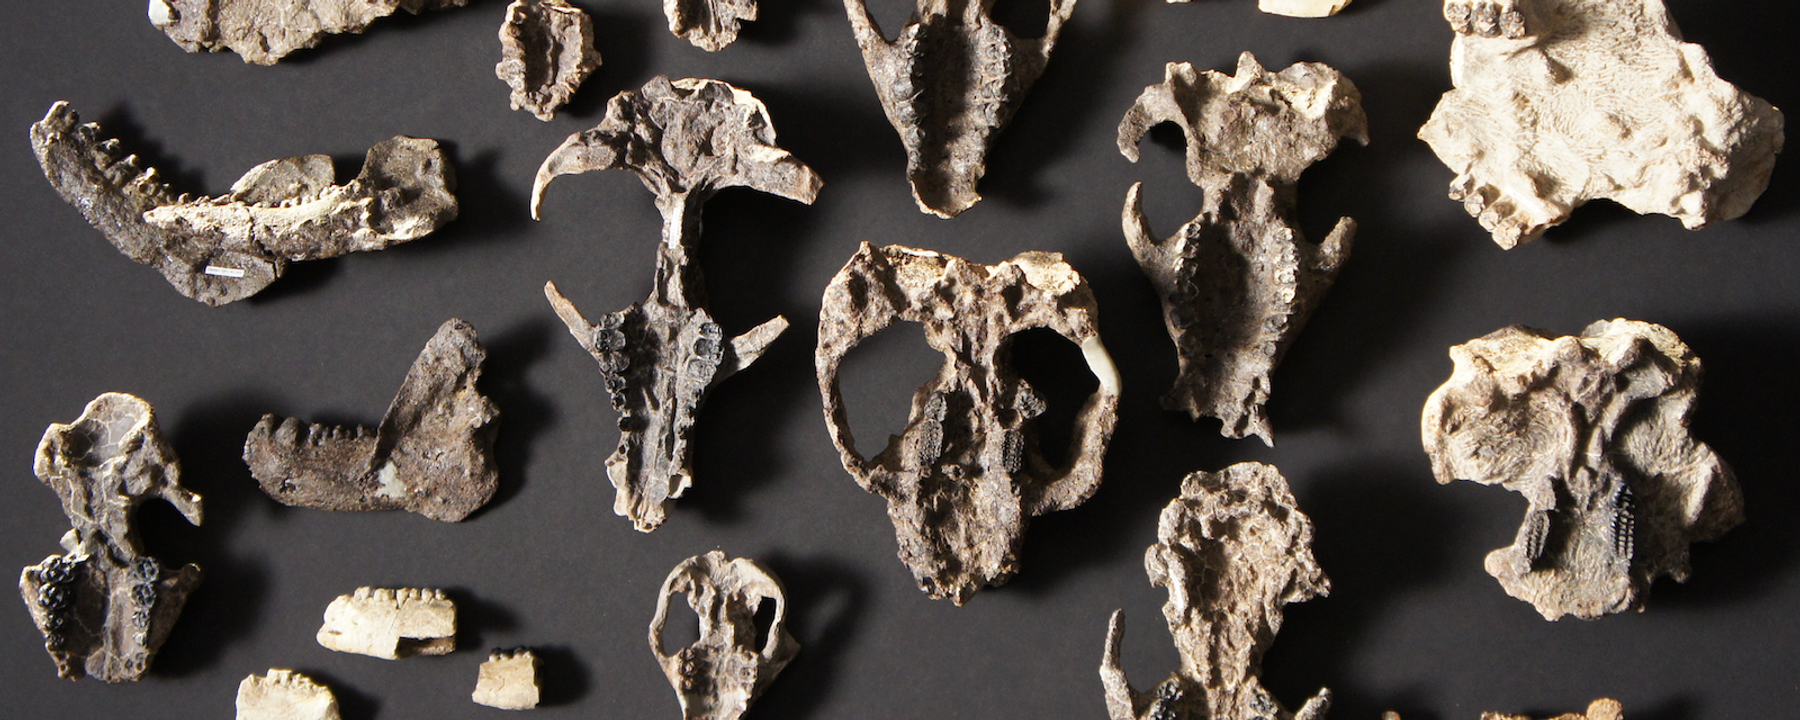 Trove of Fossils Shows Mammal Evolution after Dino Extinction